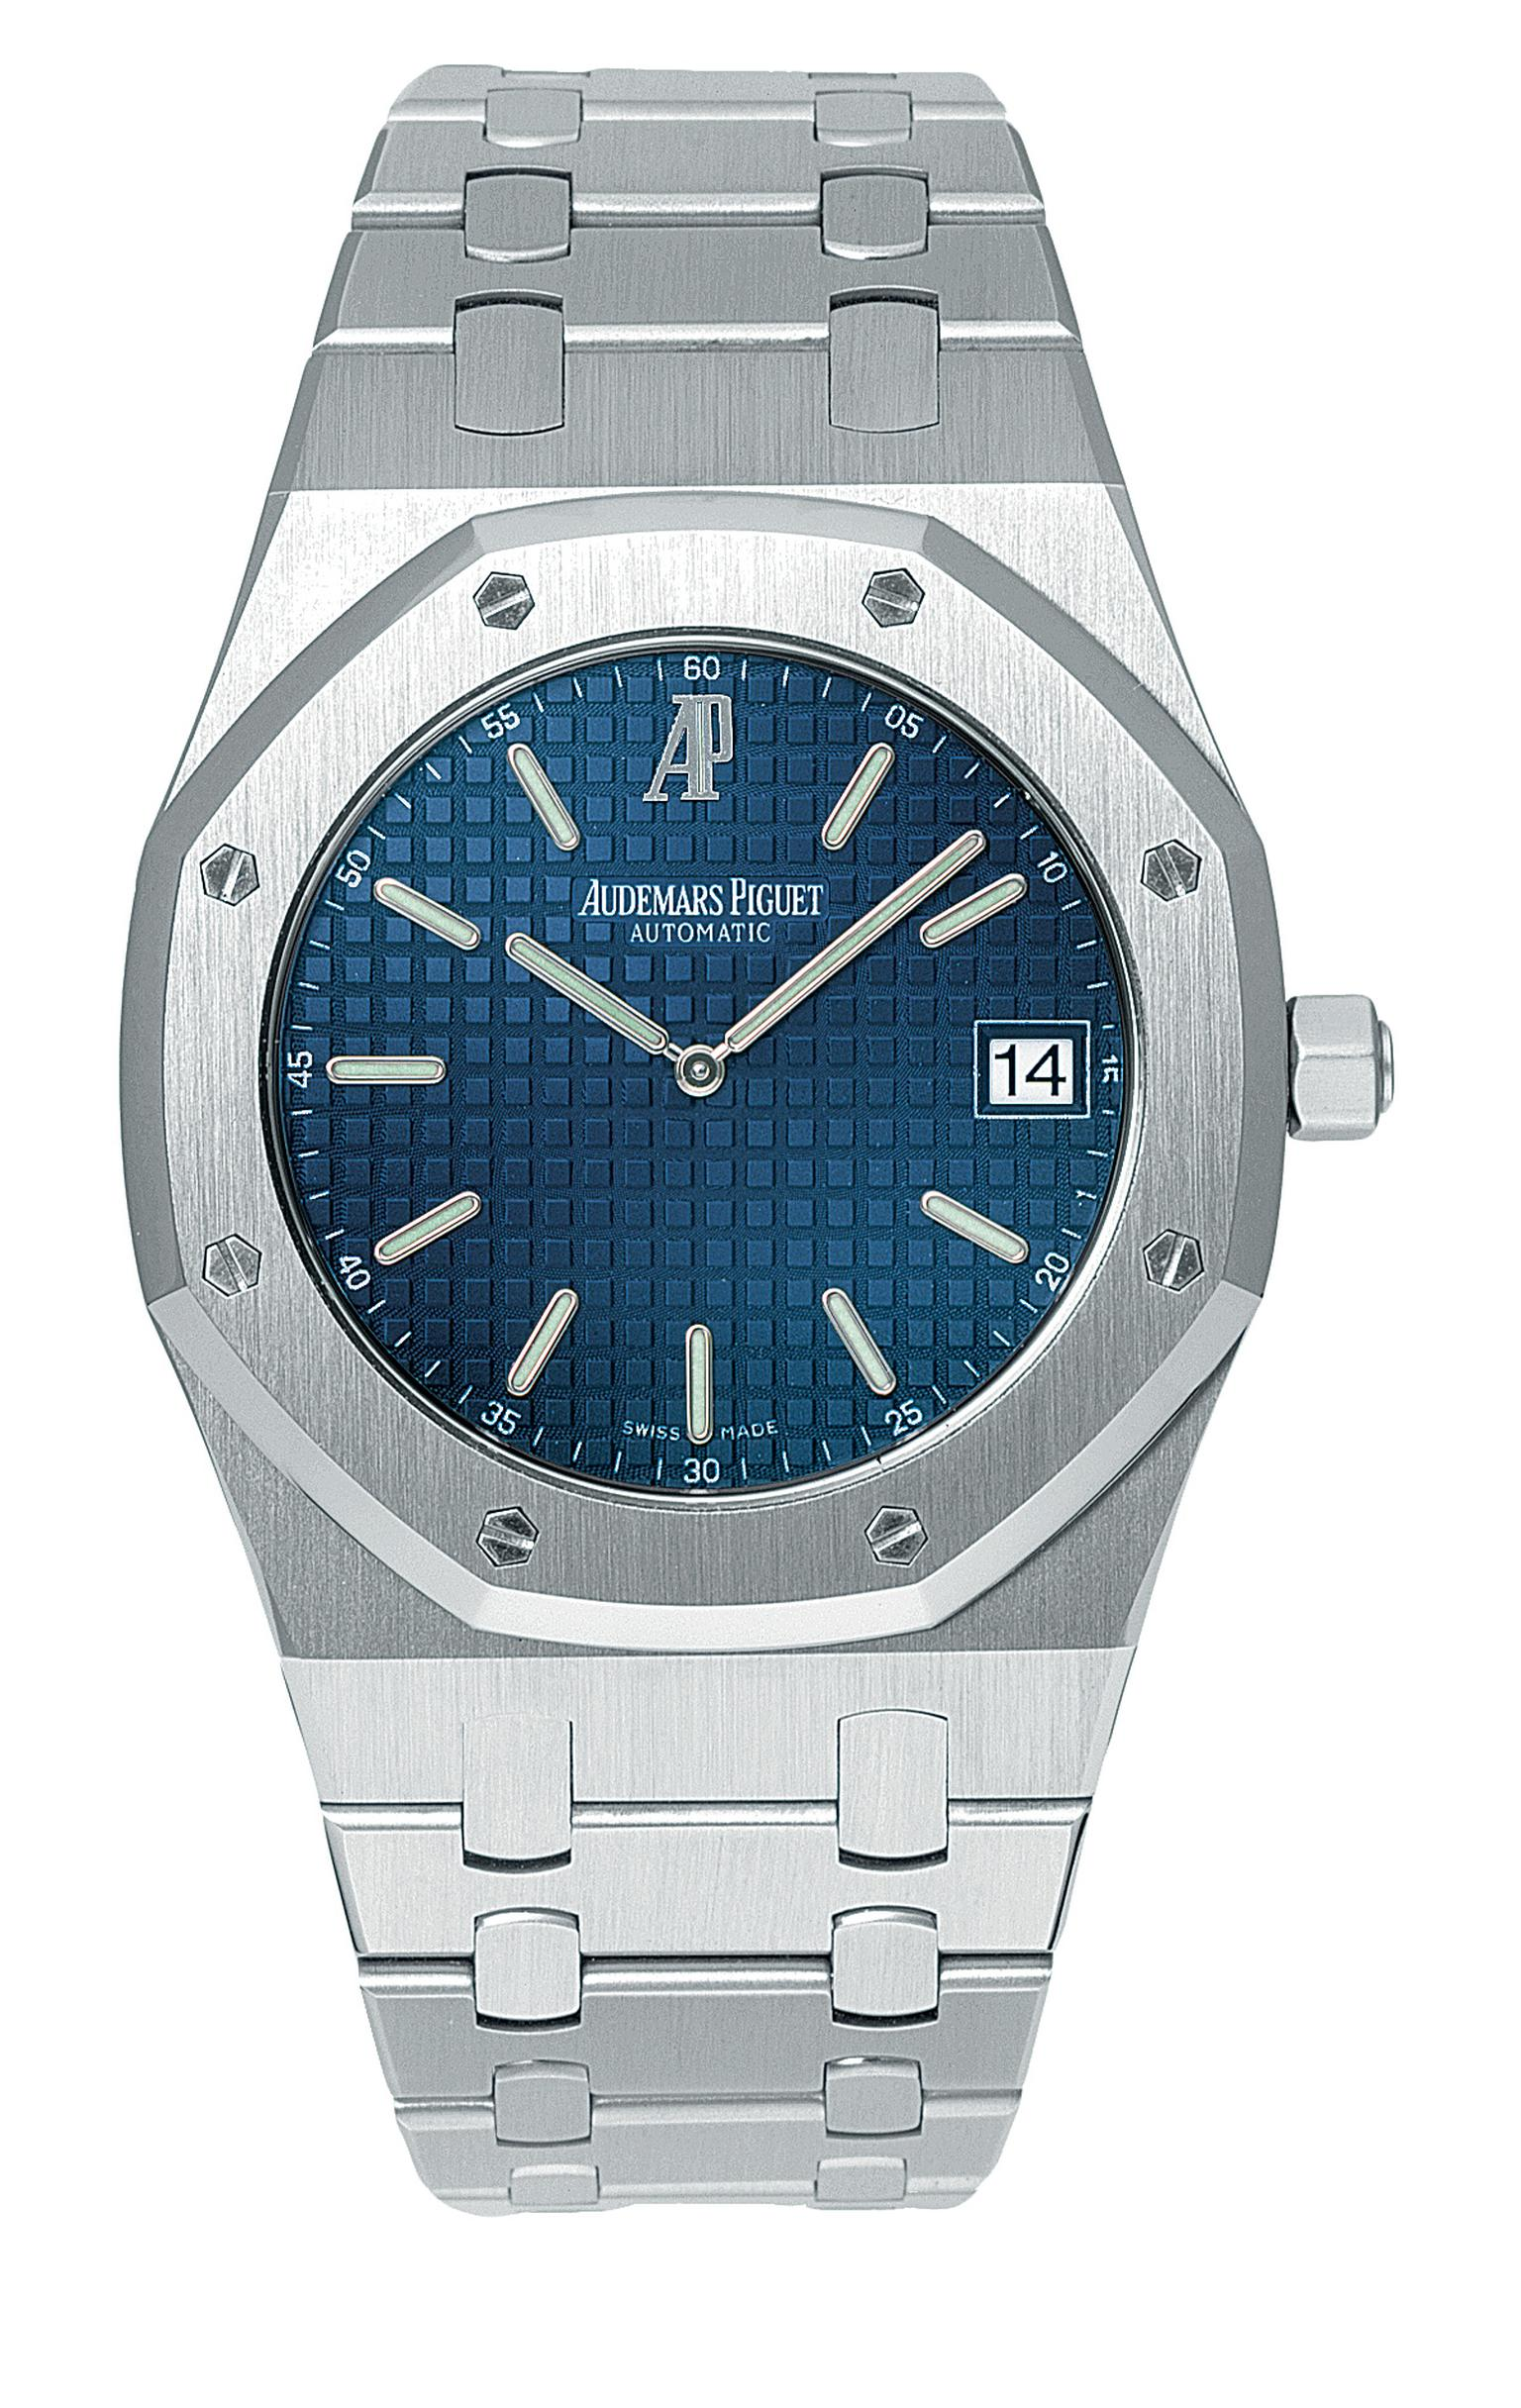 Audemars Piguet Royal Oak Selfwinding in stainless steel_20130425_Zoom